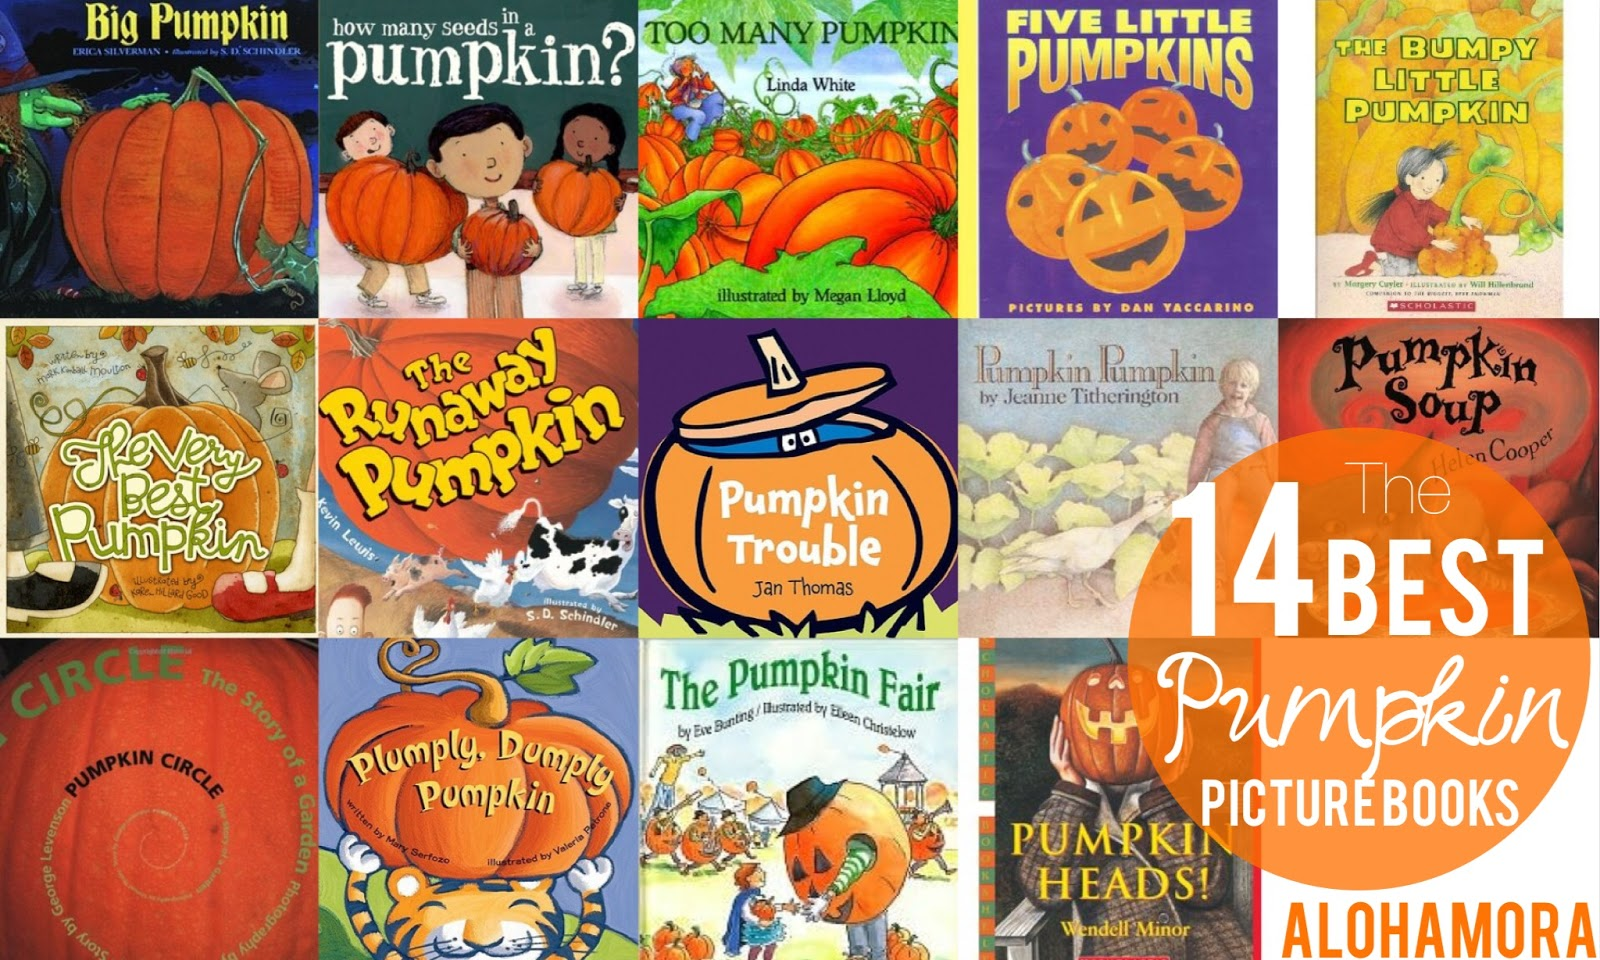 The 14 Very Best Pumpkin Picture Books out there.  All fun books about pumpkins, some with a little Halloween to them (mostly jack-o-lantern connections).  All non-scary and great read alouds for a parent, teacher, or librarian.  Many of the books would make great lessons for reading, math, science, or writing.  Alohamora Open a Book http://www.alohamoraopenabook.blogspot.com/